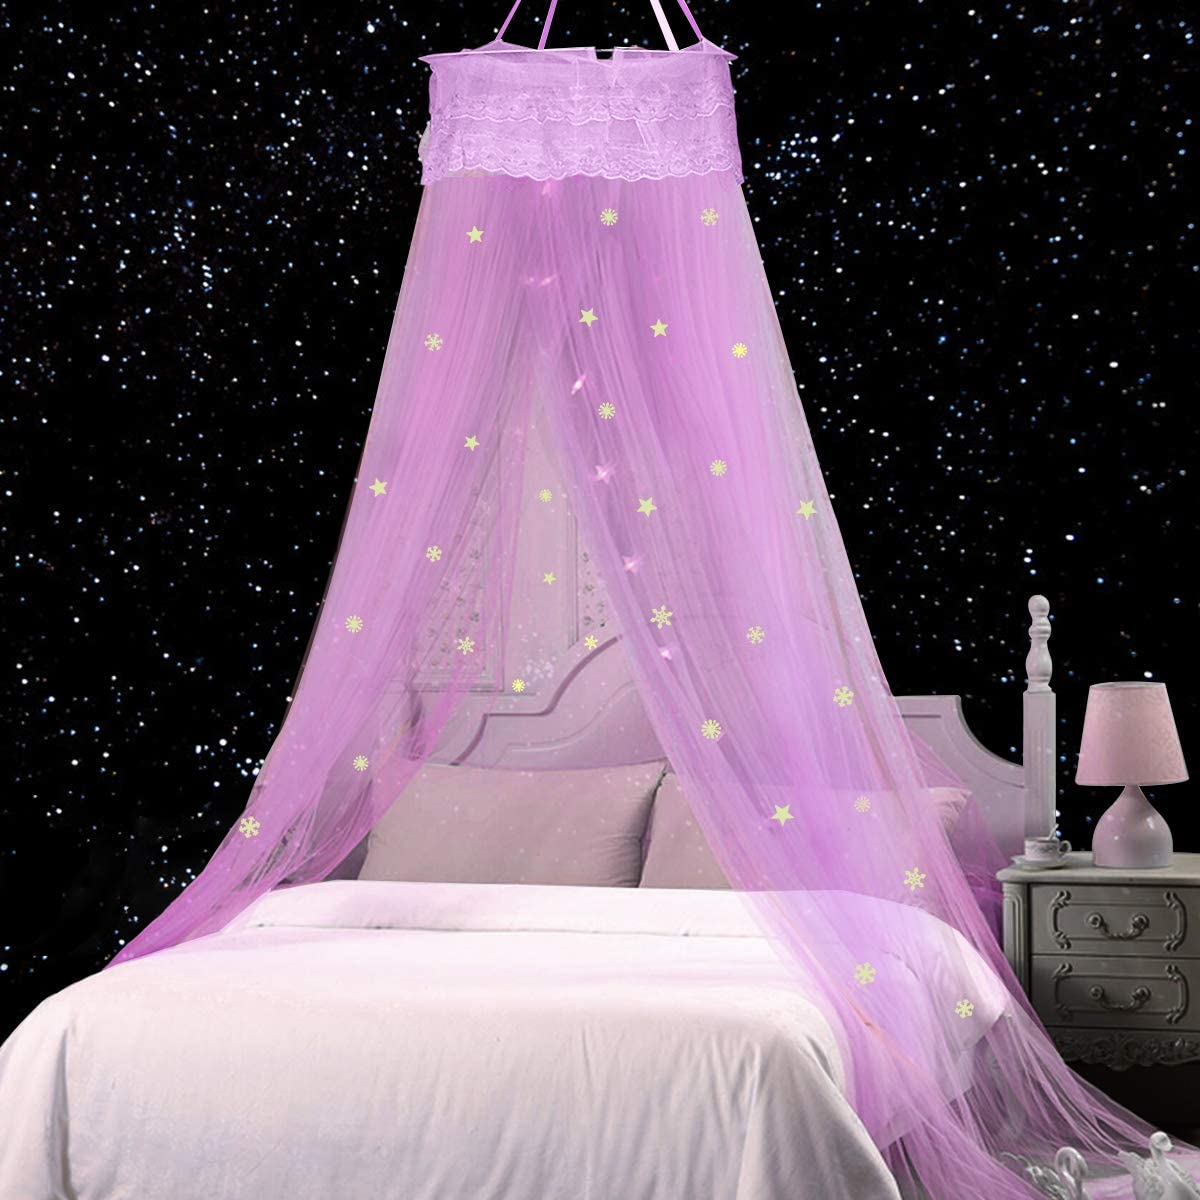 Jeteven Bed Canopy Lace Mosquito Net with Stars Snowflake, Anti Mosquito As Mosquito Net for Baby, Kids, Girls Princess Play Tent Reading Nook Round Lace Dome Curtains Baby Kids Games House